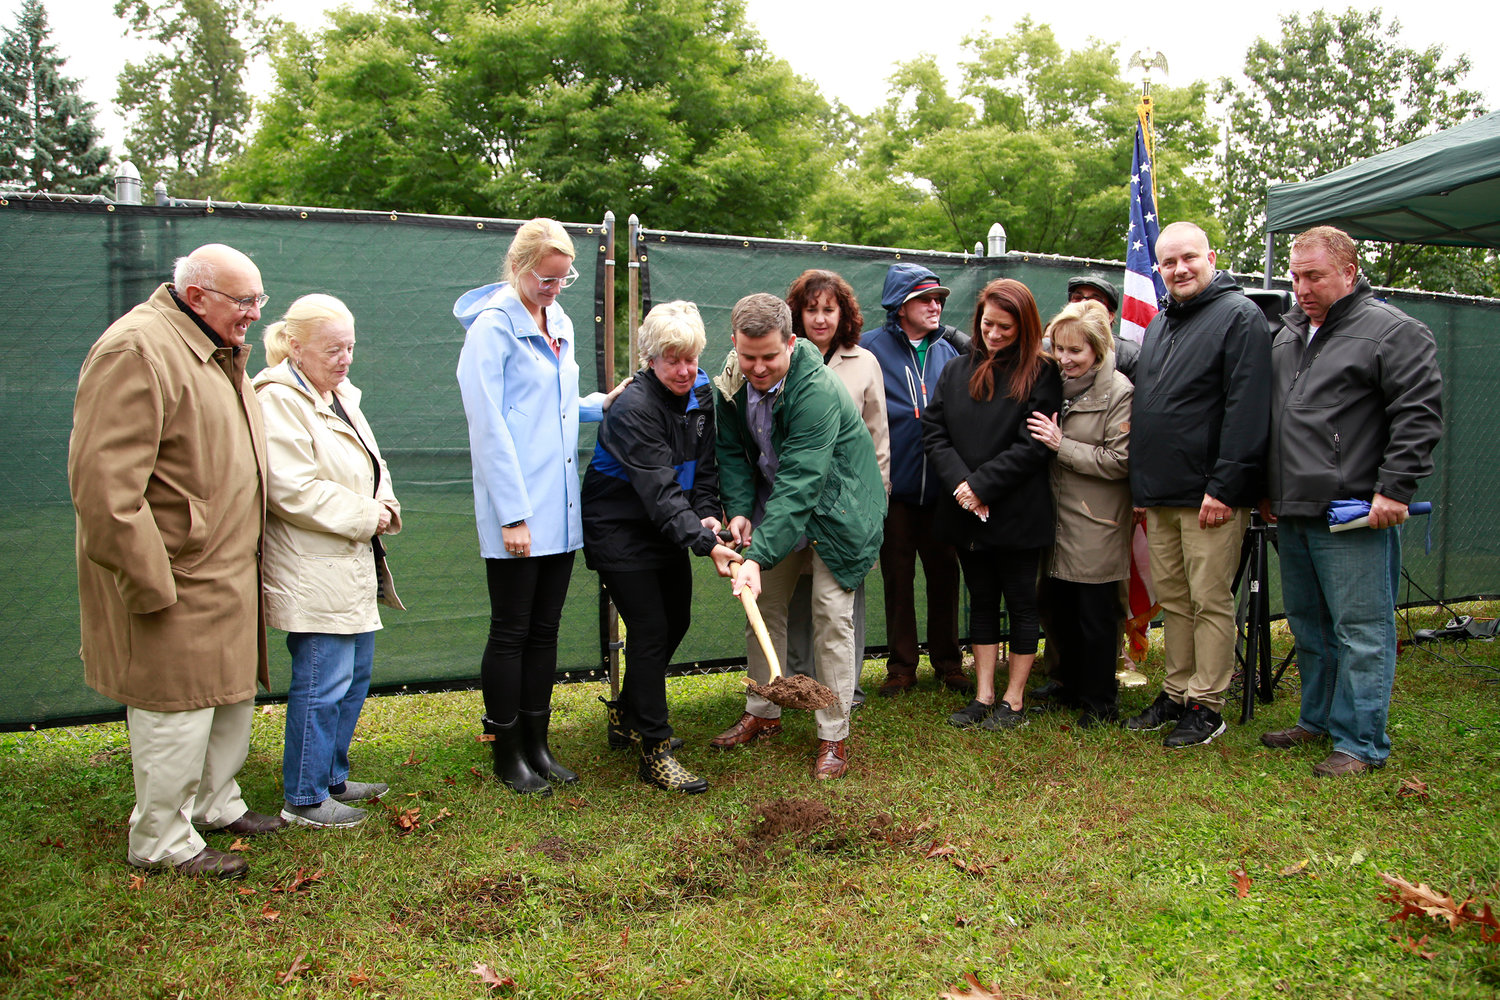 Members of the Steve McDonald Memorial Corporation gathered around Malverne Mayor Patti Ann McDonald and her son, Conor, as they broke ground at Westwood Park for the Steven McDonald Garden of Forgiveness on Oct. 13.